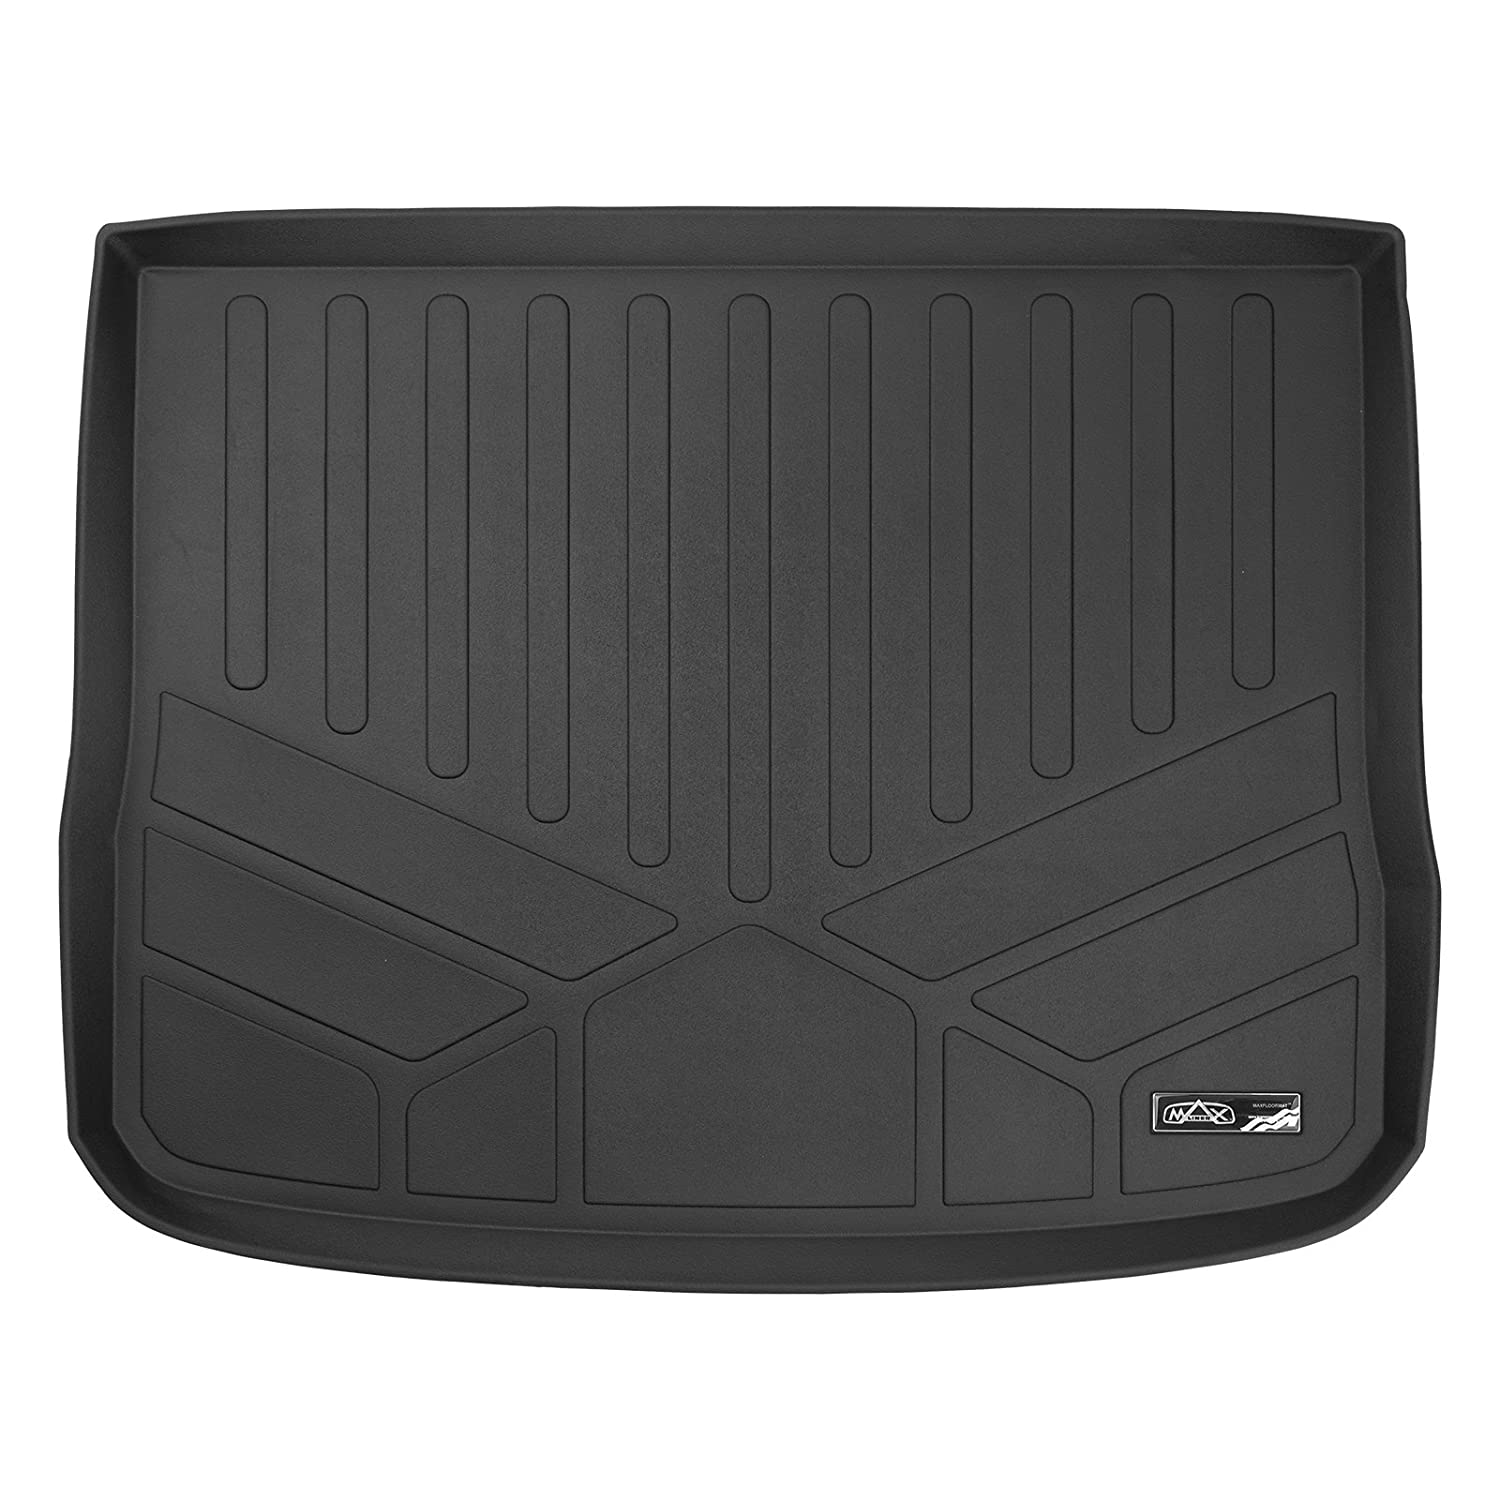 MAXLINER MAXTRAY All Weather Cargo Liner Floor Mat Black for 2009-2017 Volkswagen Tiguan D0280